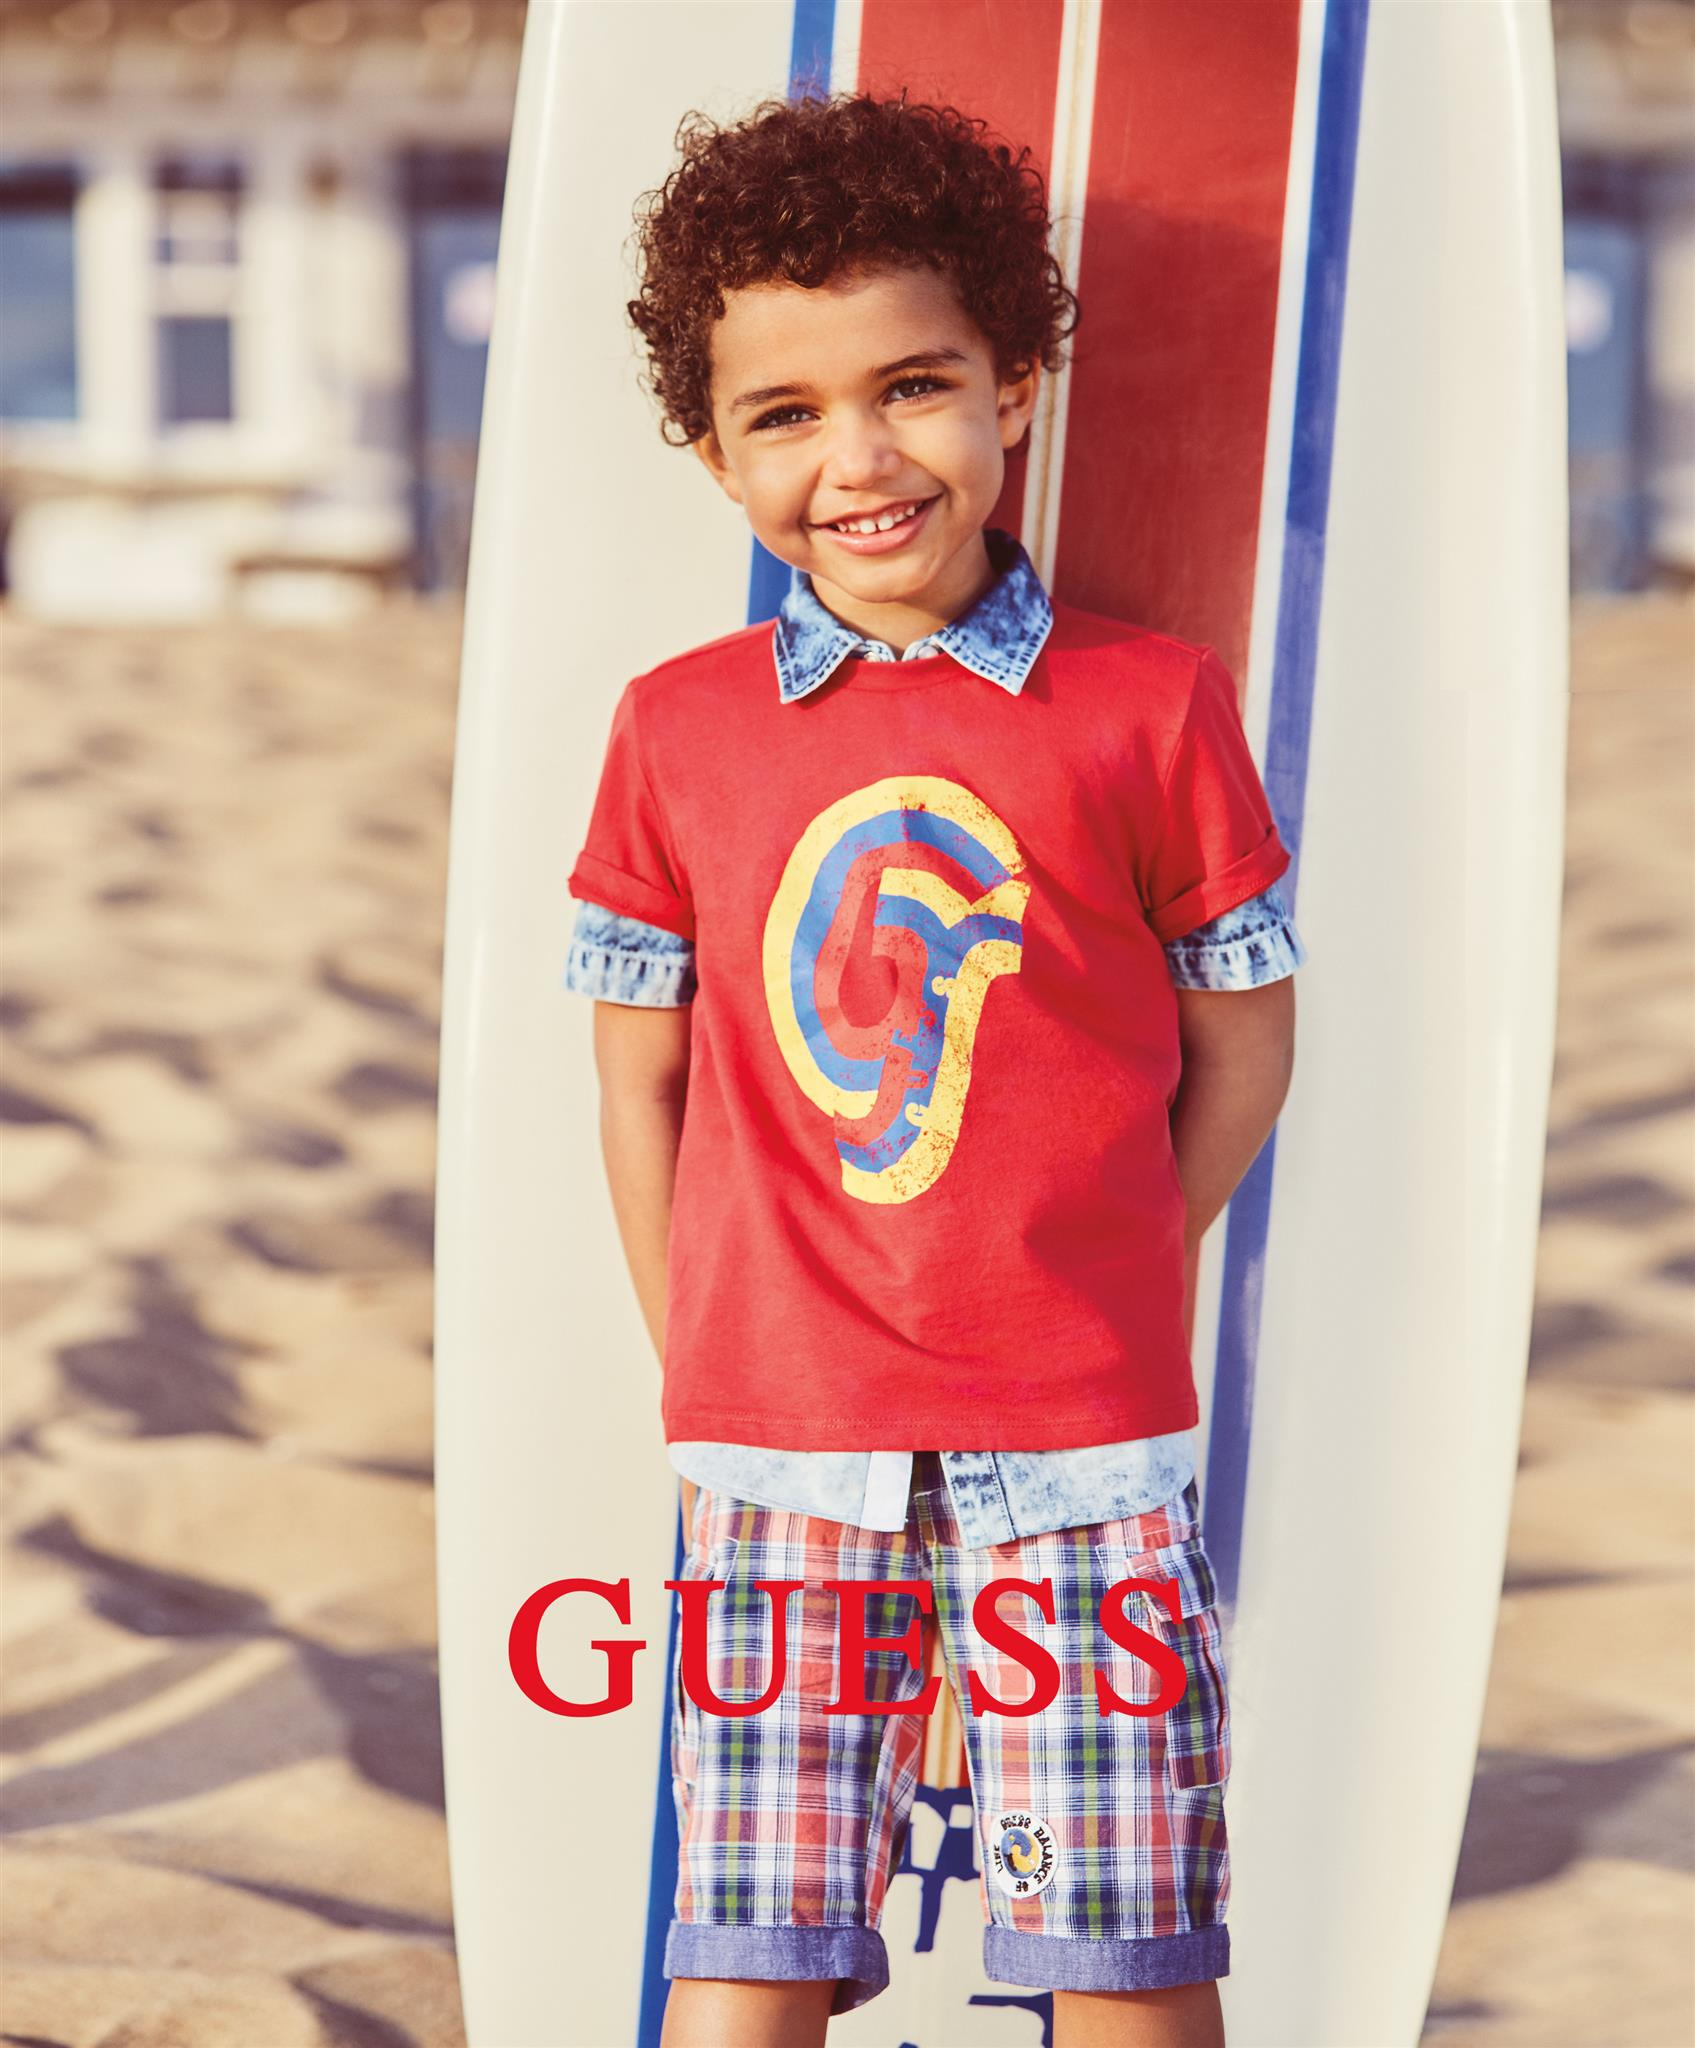 599_GUESS_Kids_Sp18_V20